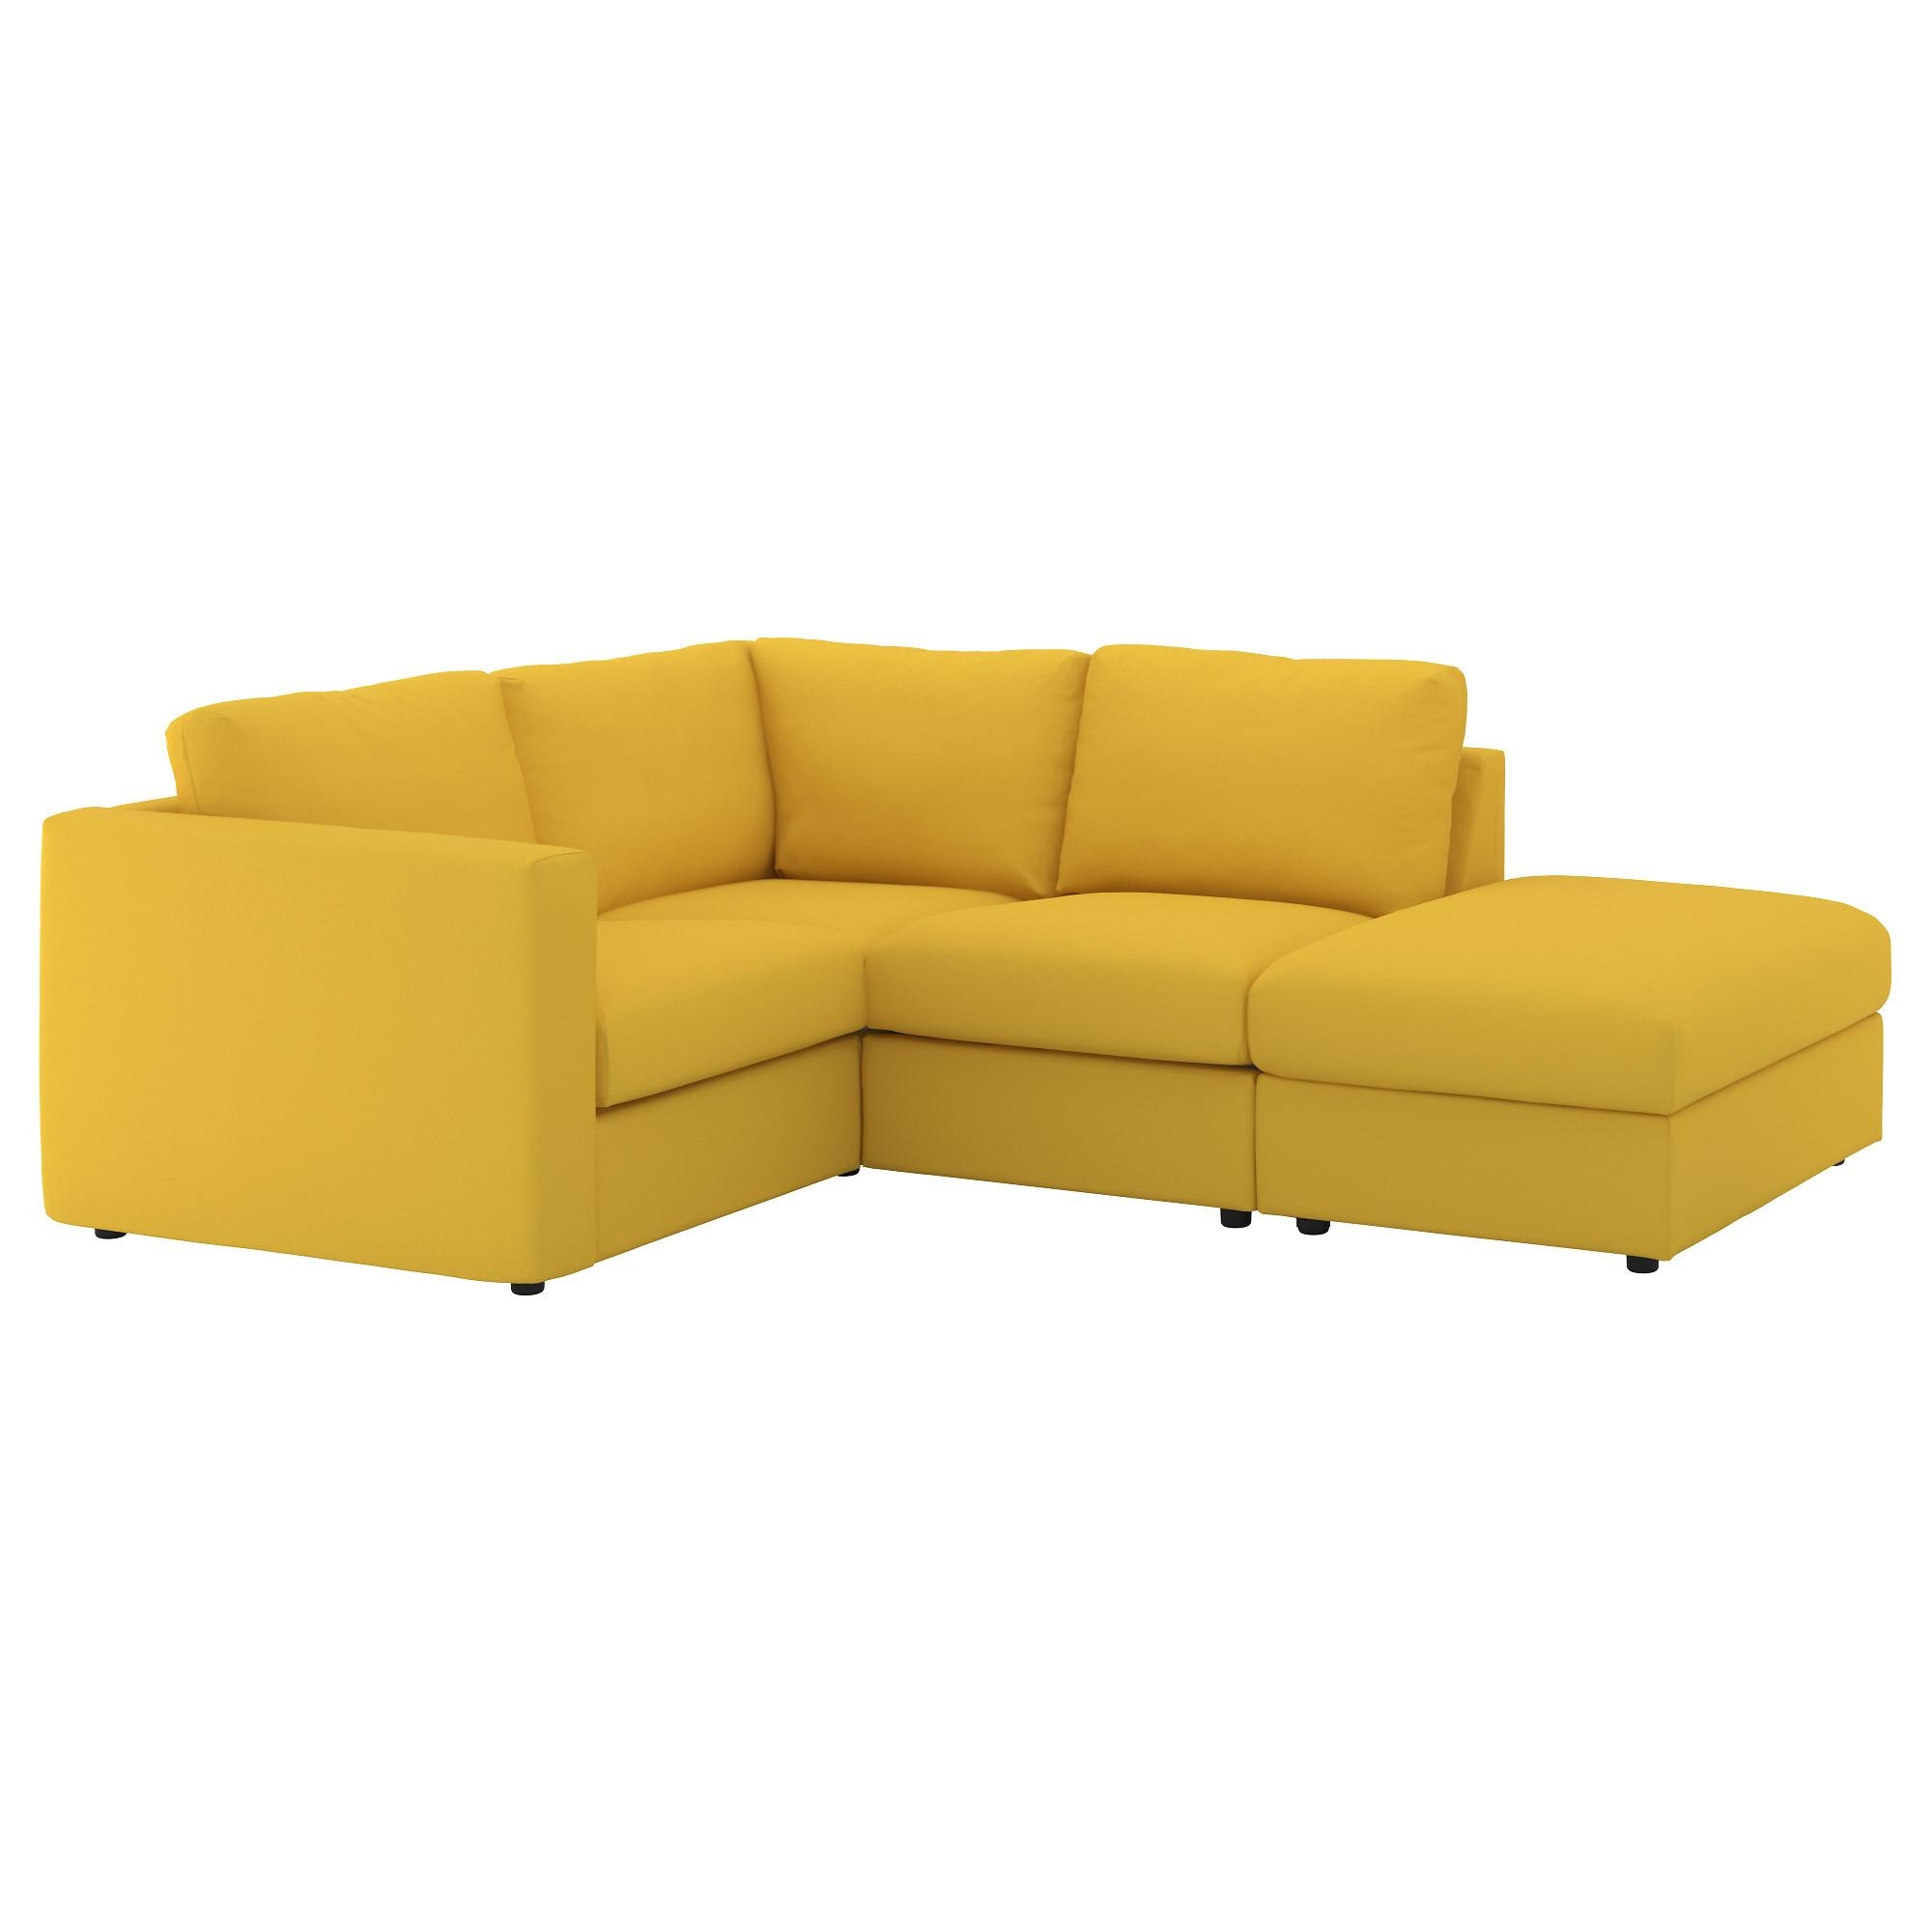 Vimle Corner Sofa, 3-Seat With Open End/gräsbo Golden-Yellow - Ikea for Corner Sofas